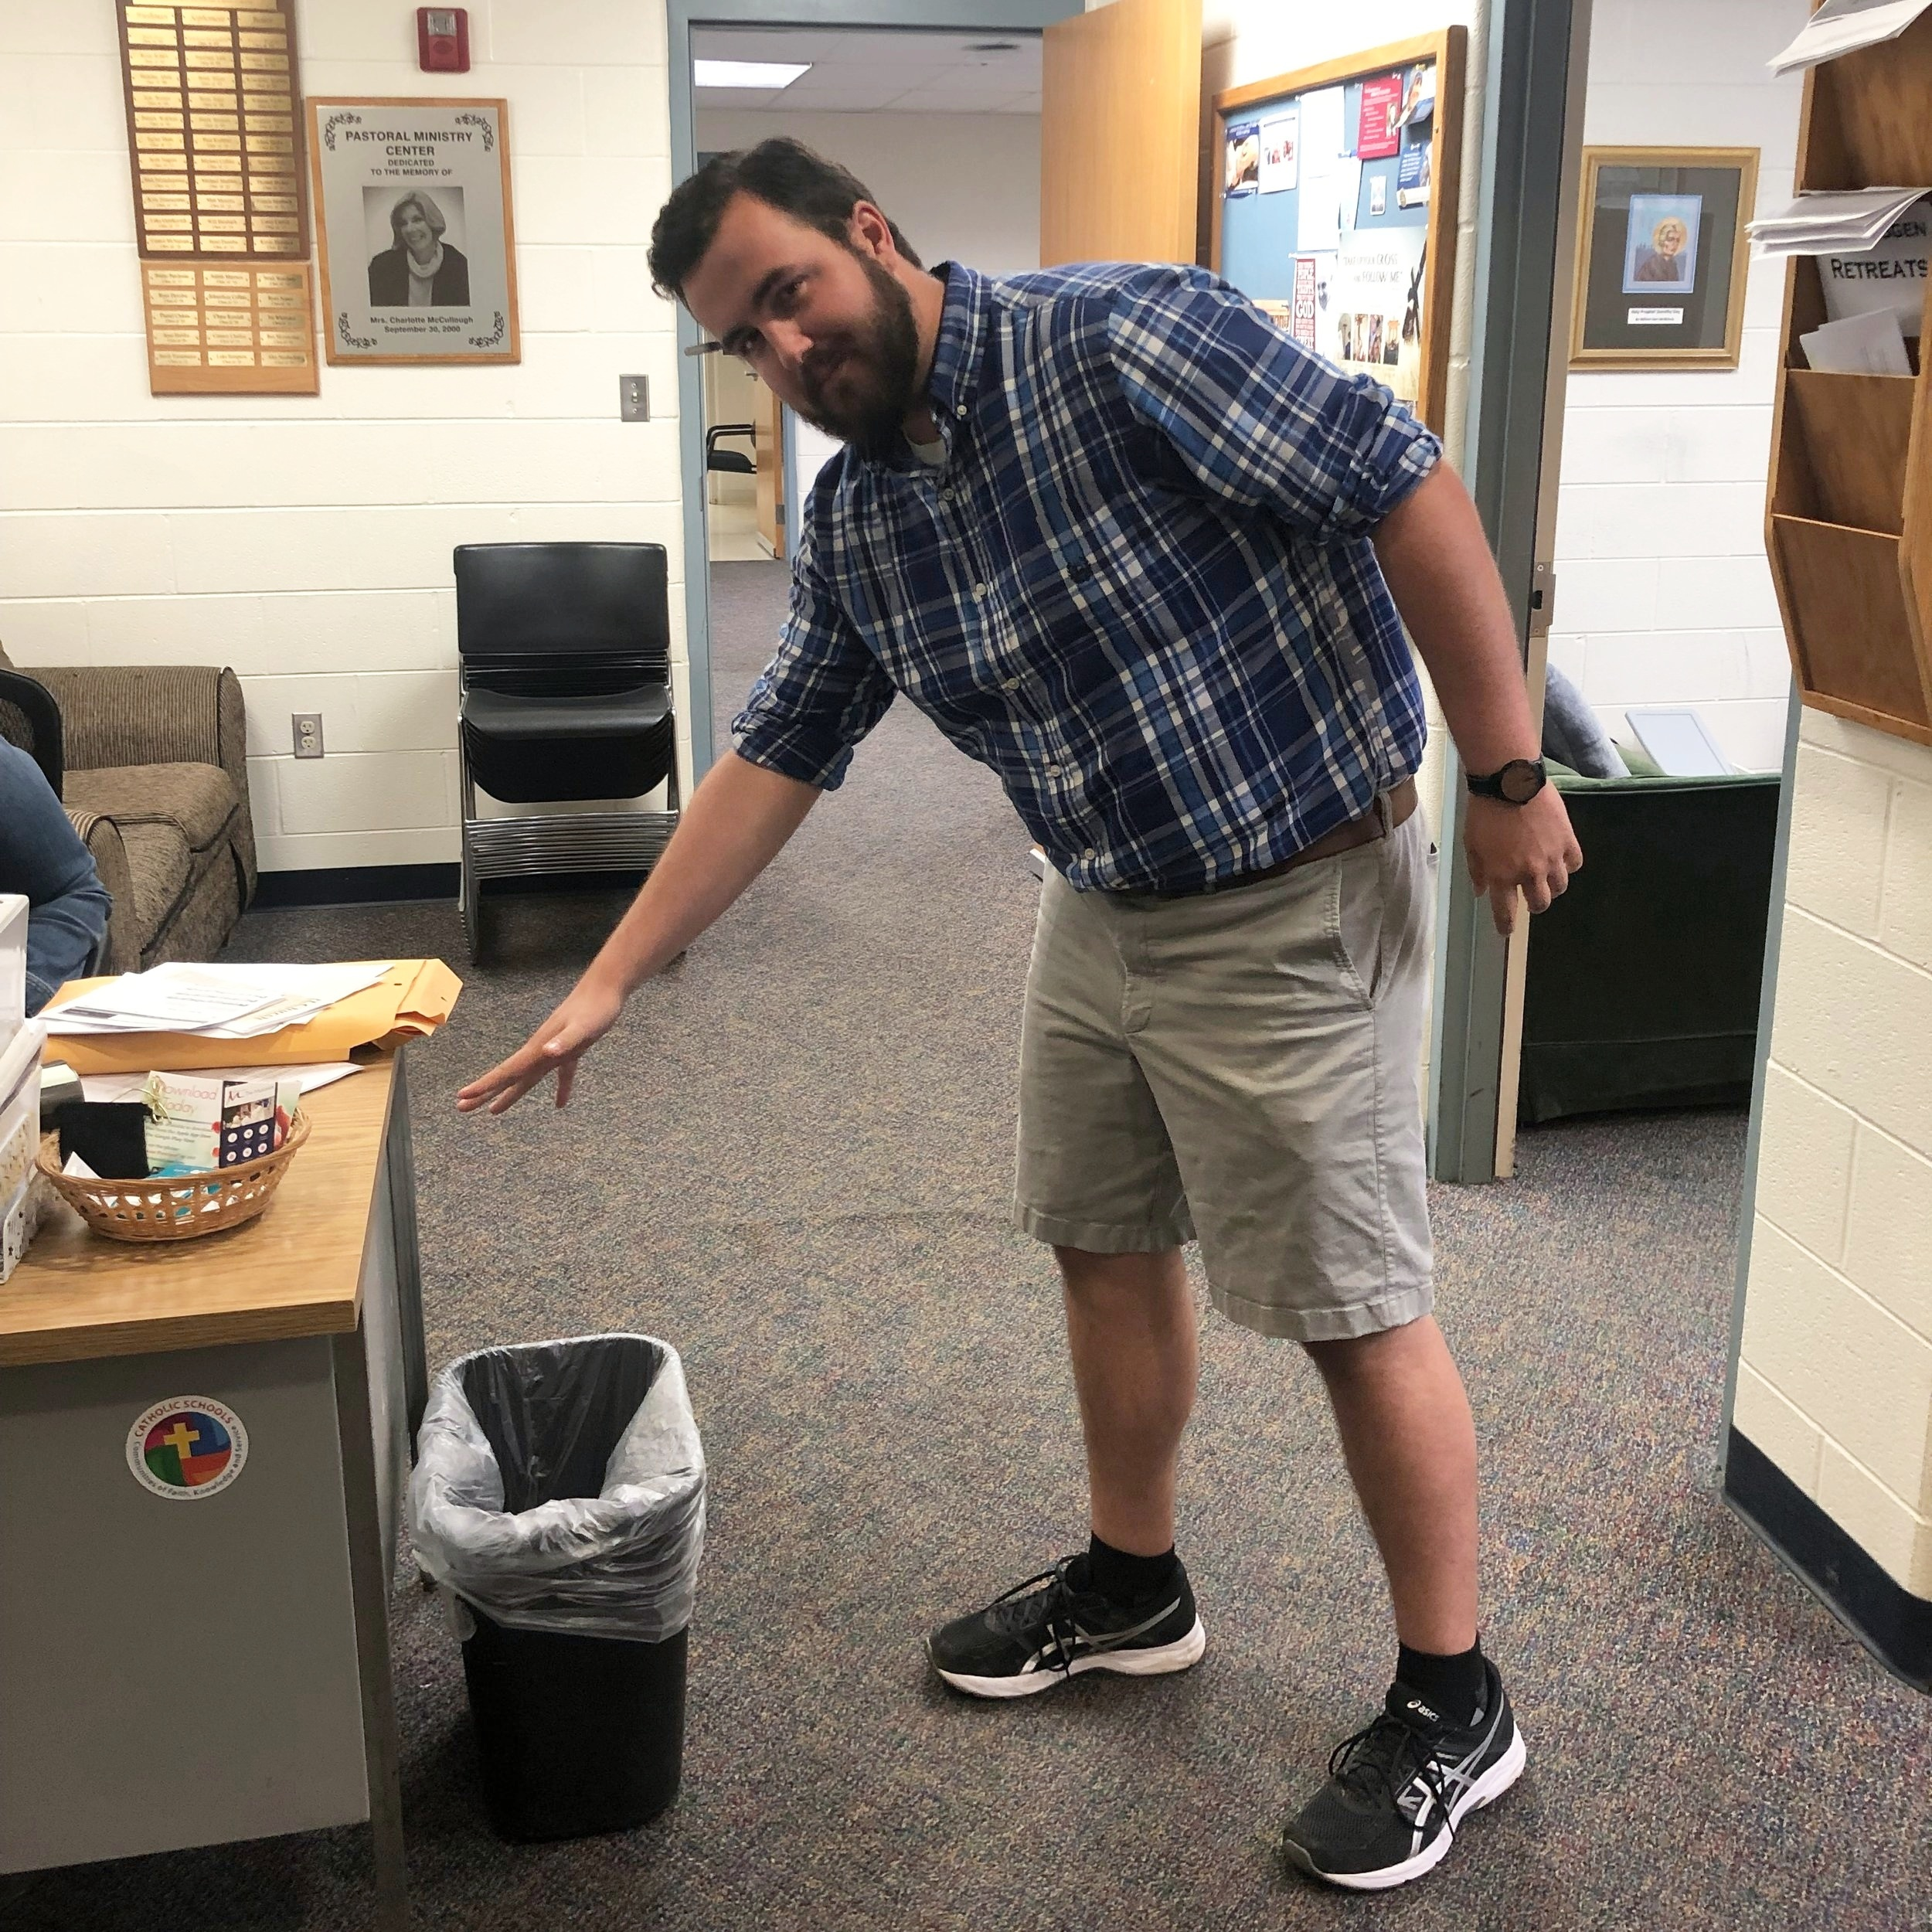 Mr. James tidying up the Campus Ministry Office  by James George